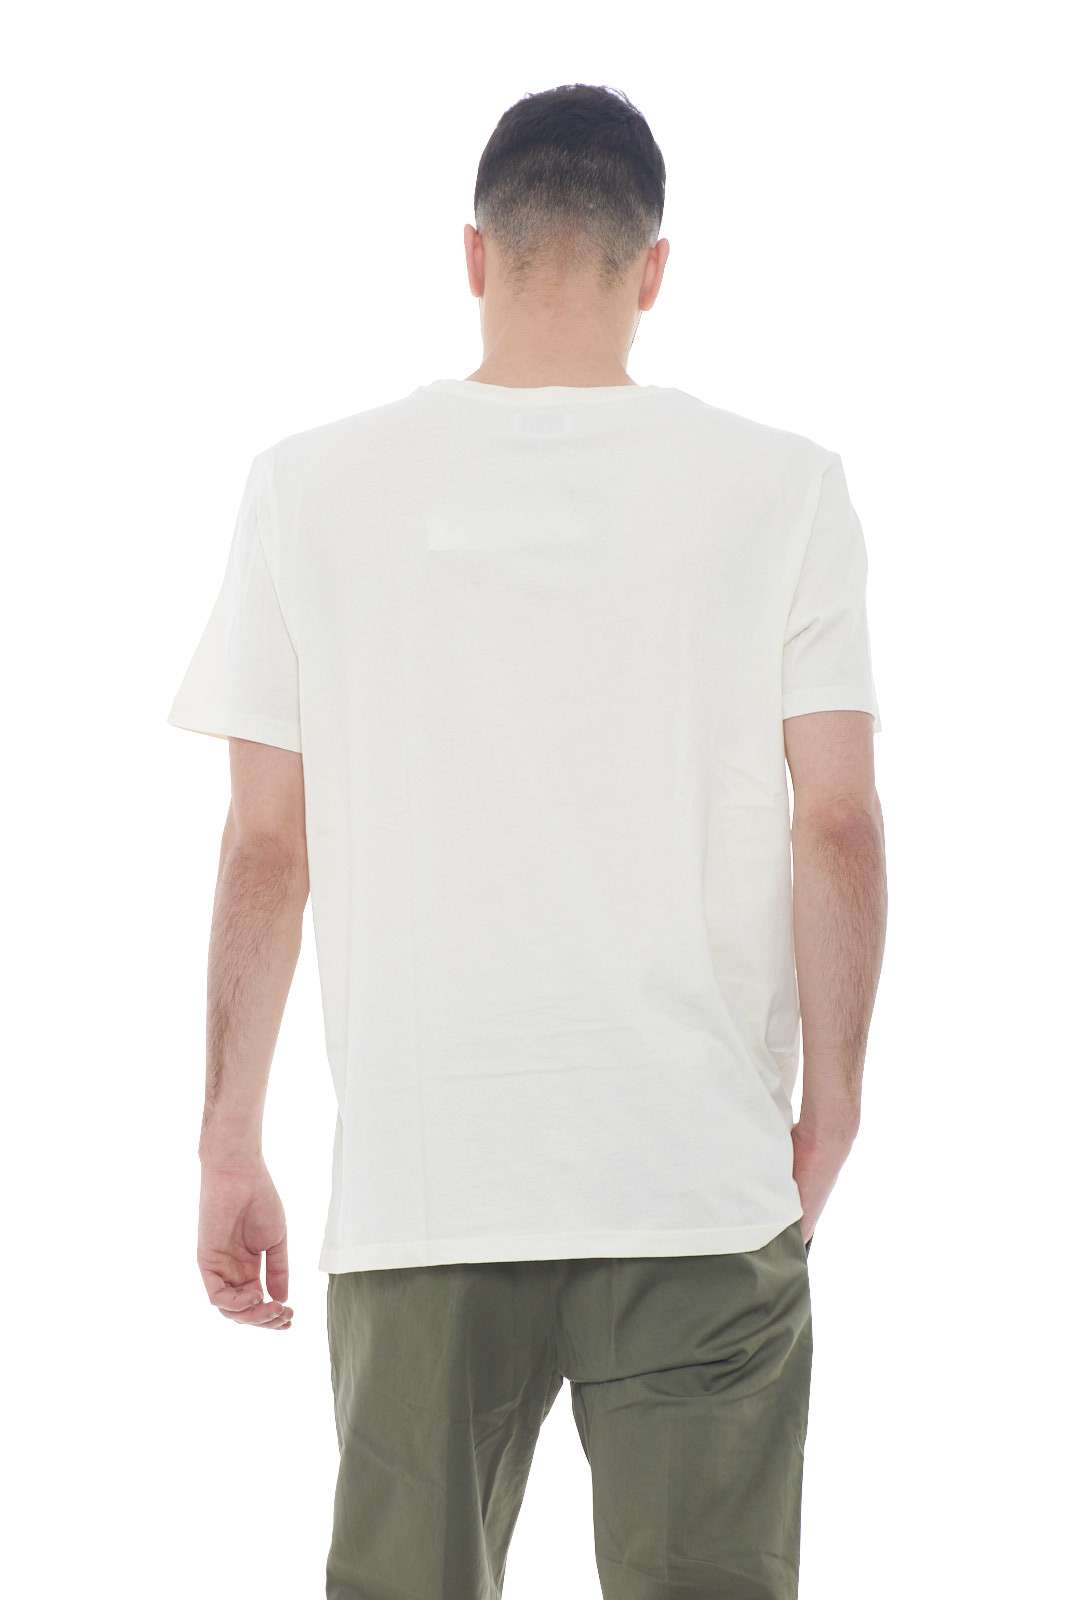 https://www.parmax.com/media/catalog/product/a/i/PE-outlet_parmax-t-shirt-uomo-PennRich-WYTEE0456-C.jpg